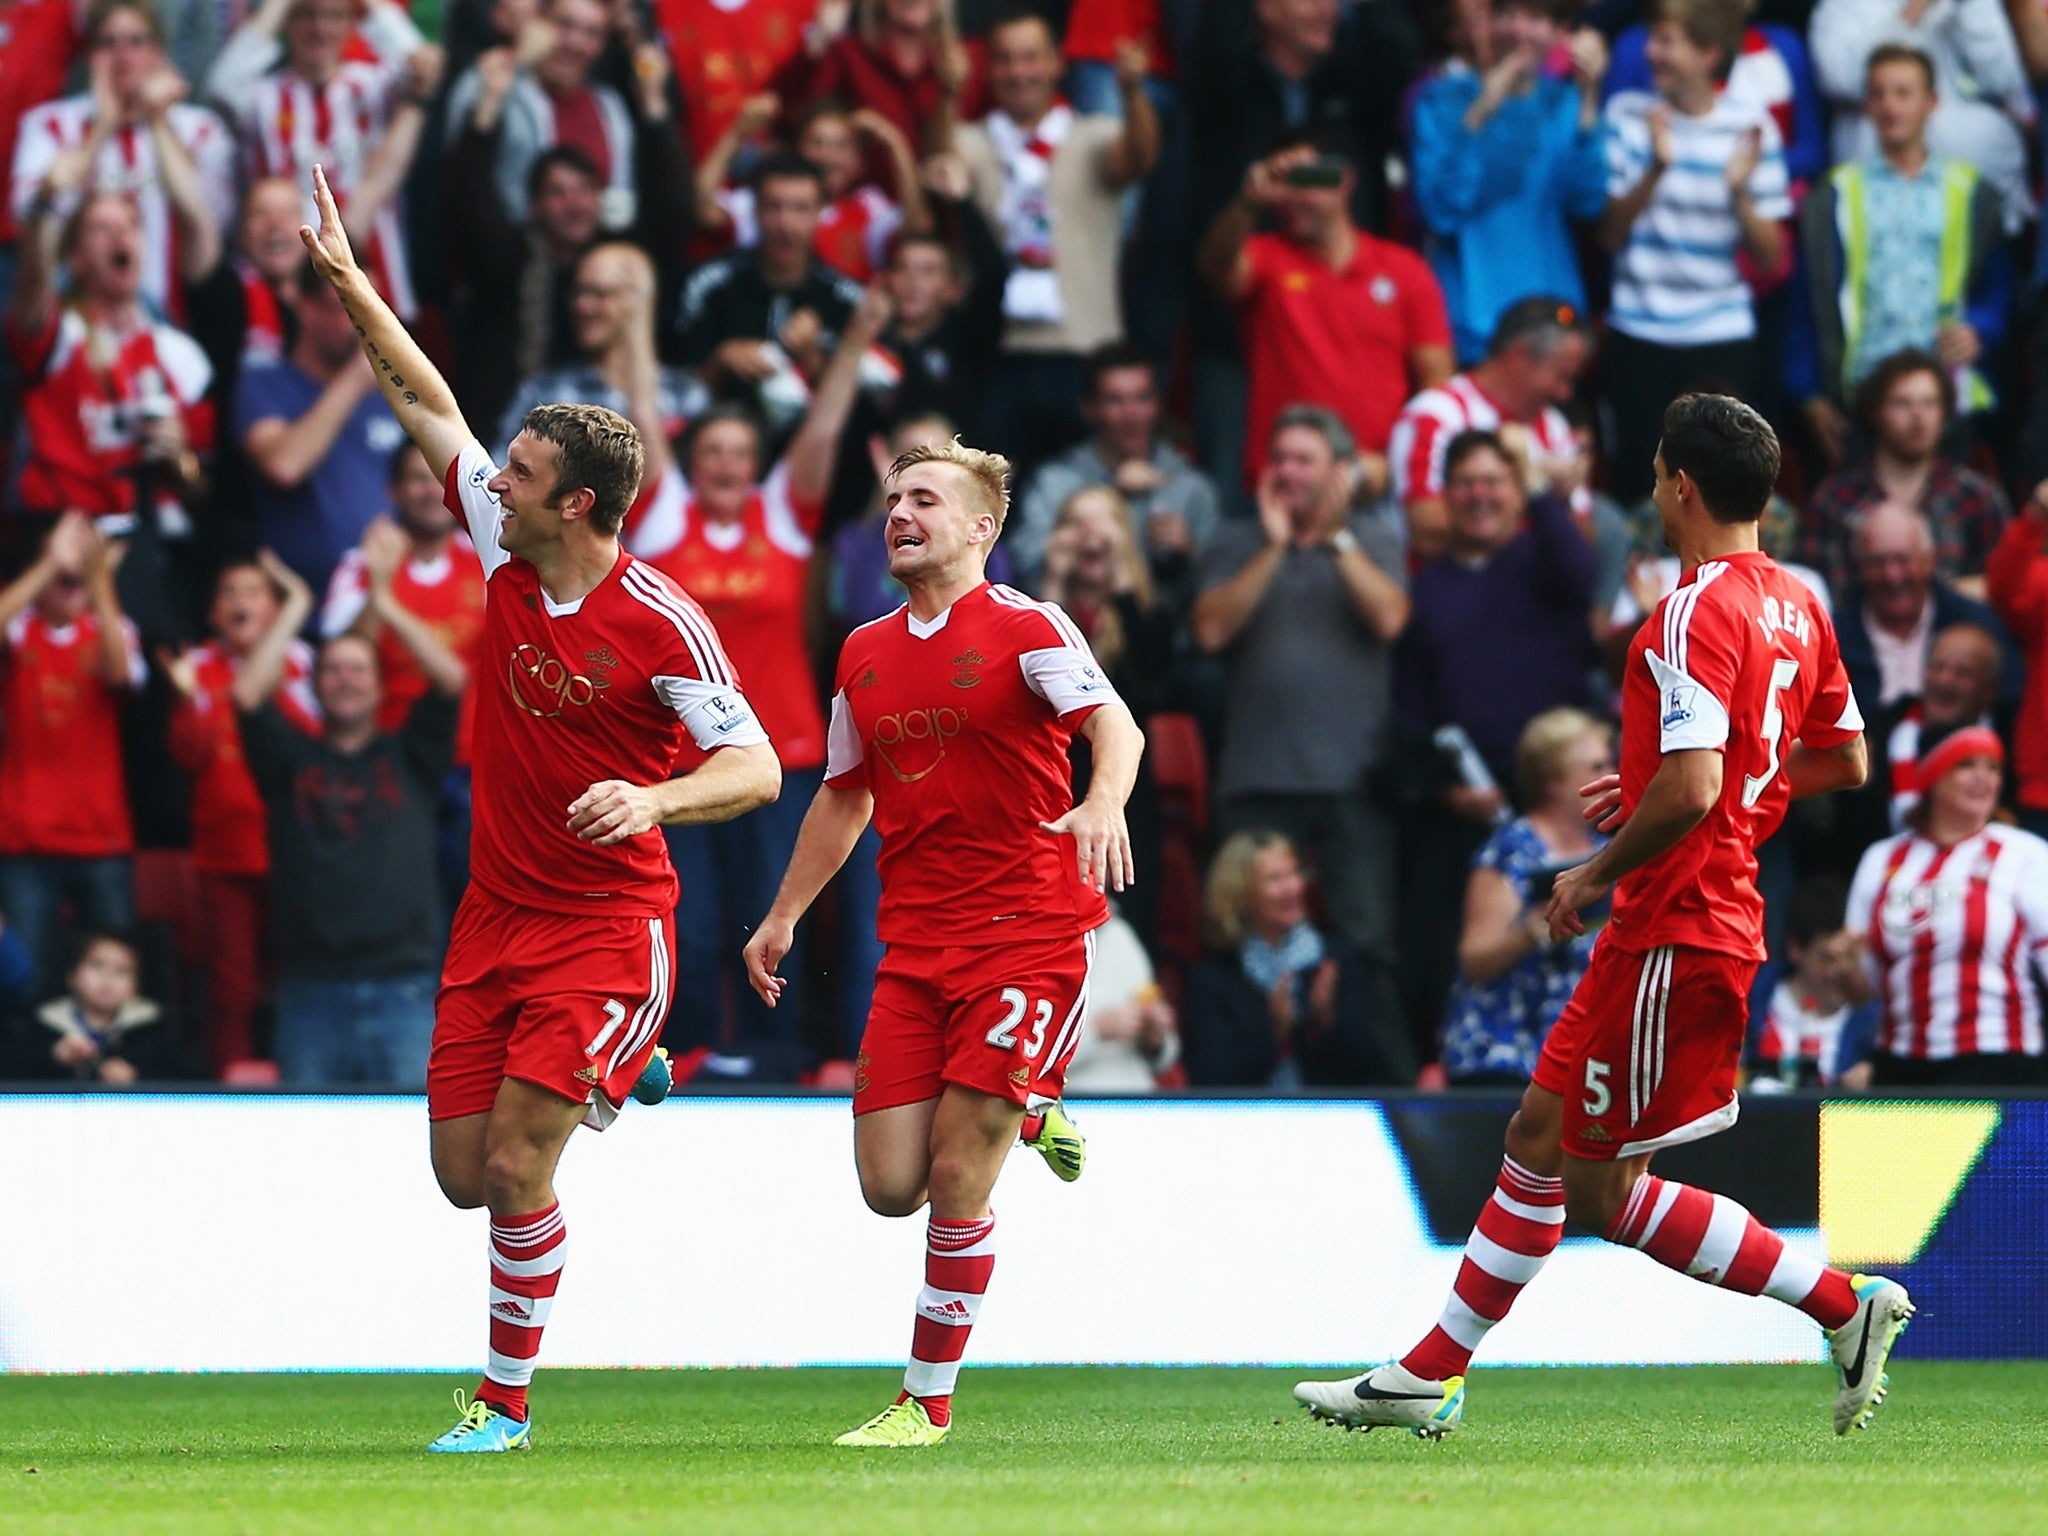 Southampton 2 Crystal Palace 0 match report: Saints go fourth as Palace problems multiply | The Independentindependent_brand_ident_LOGOUntitled